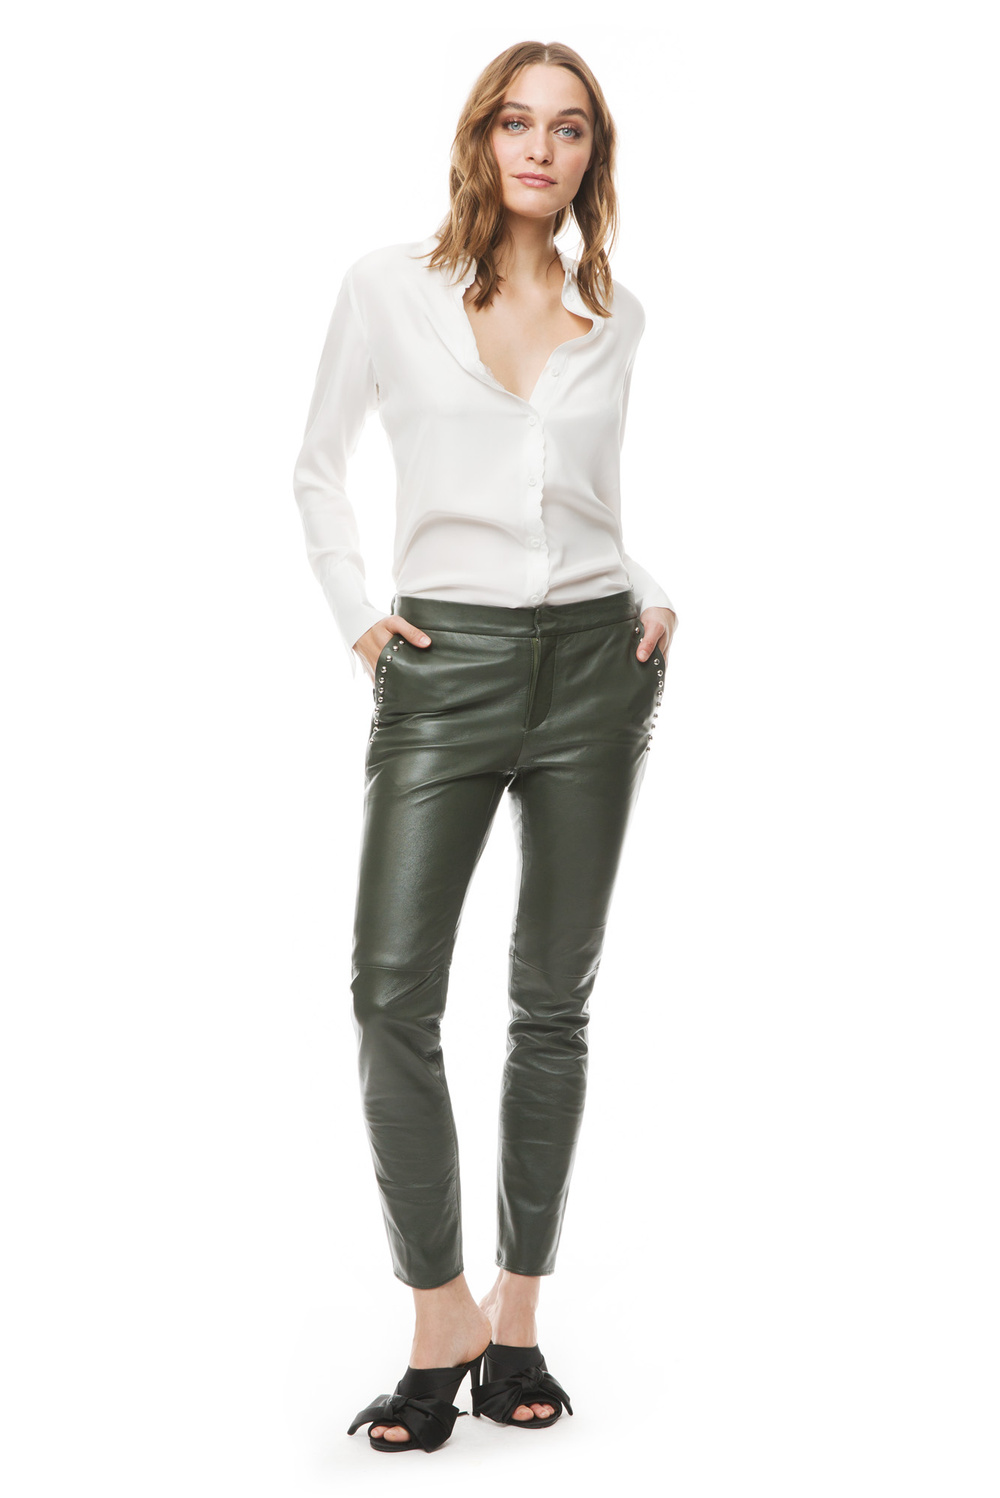 Tone leather pants